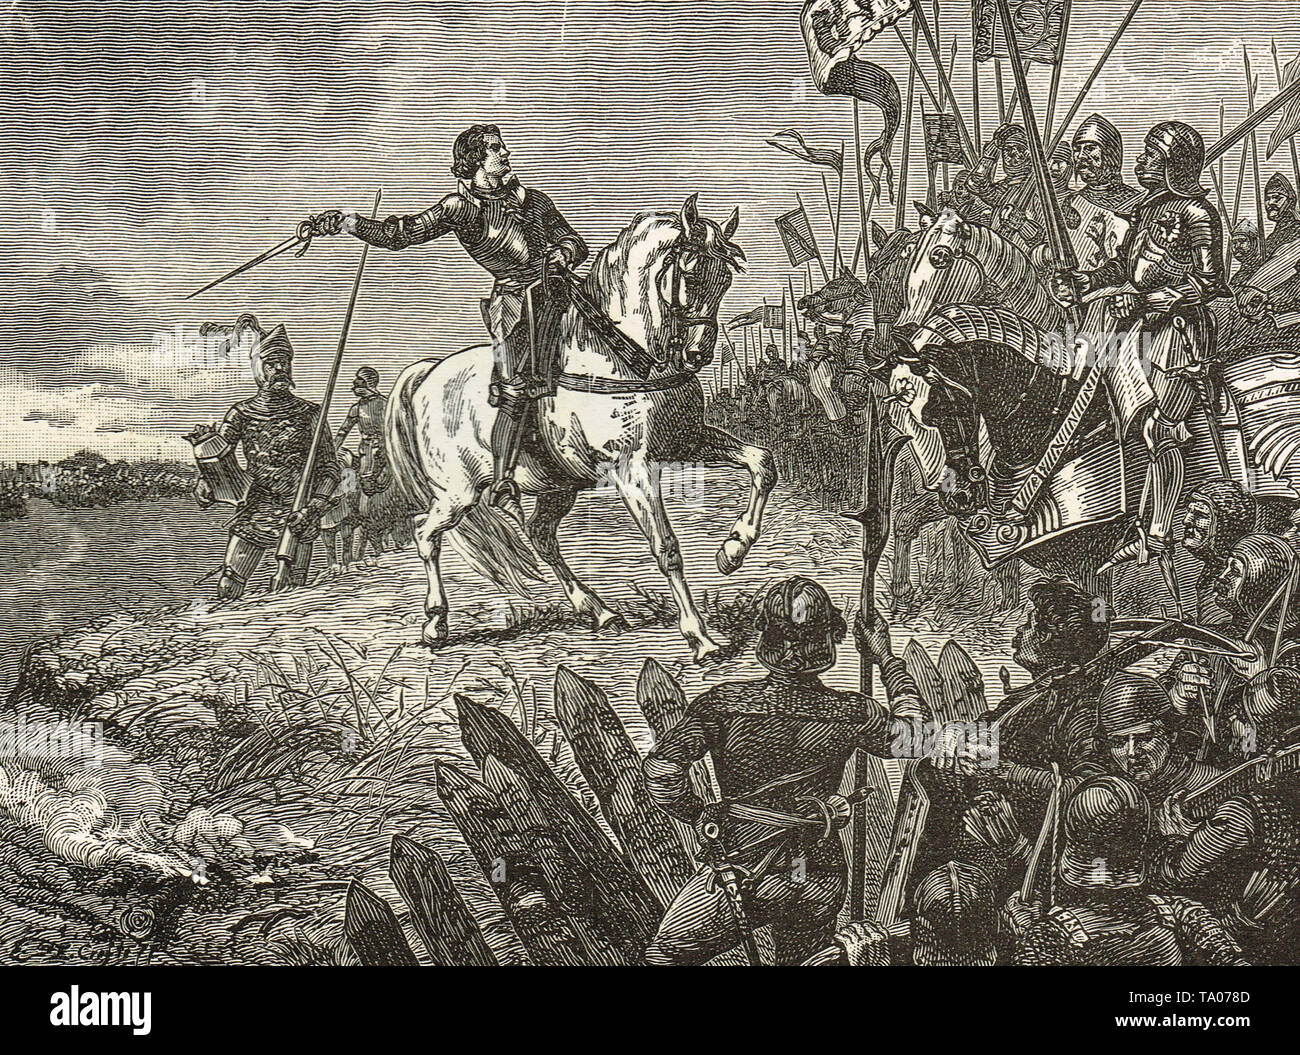 Henry V at the Battle of Agincourt, Saint Crispin's Day, 25 October 1415 - Stock Image